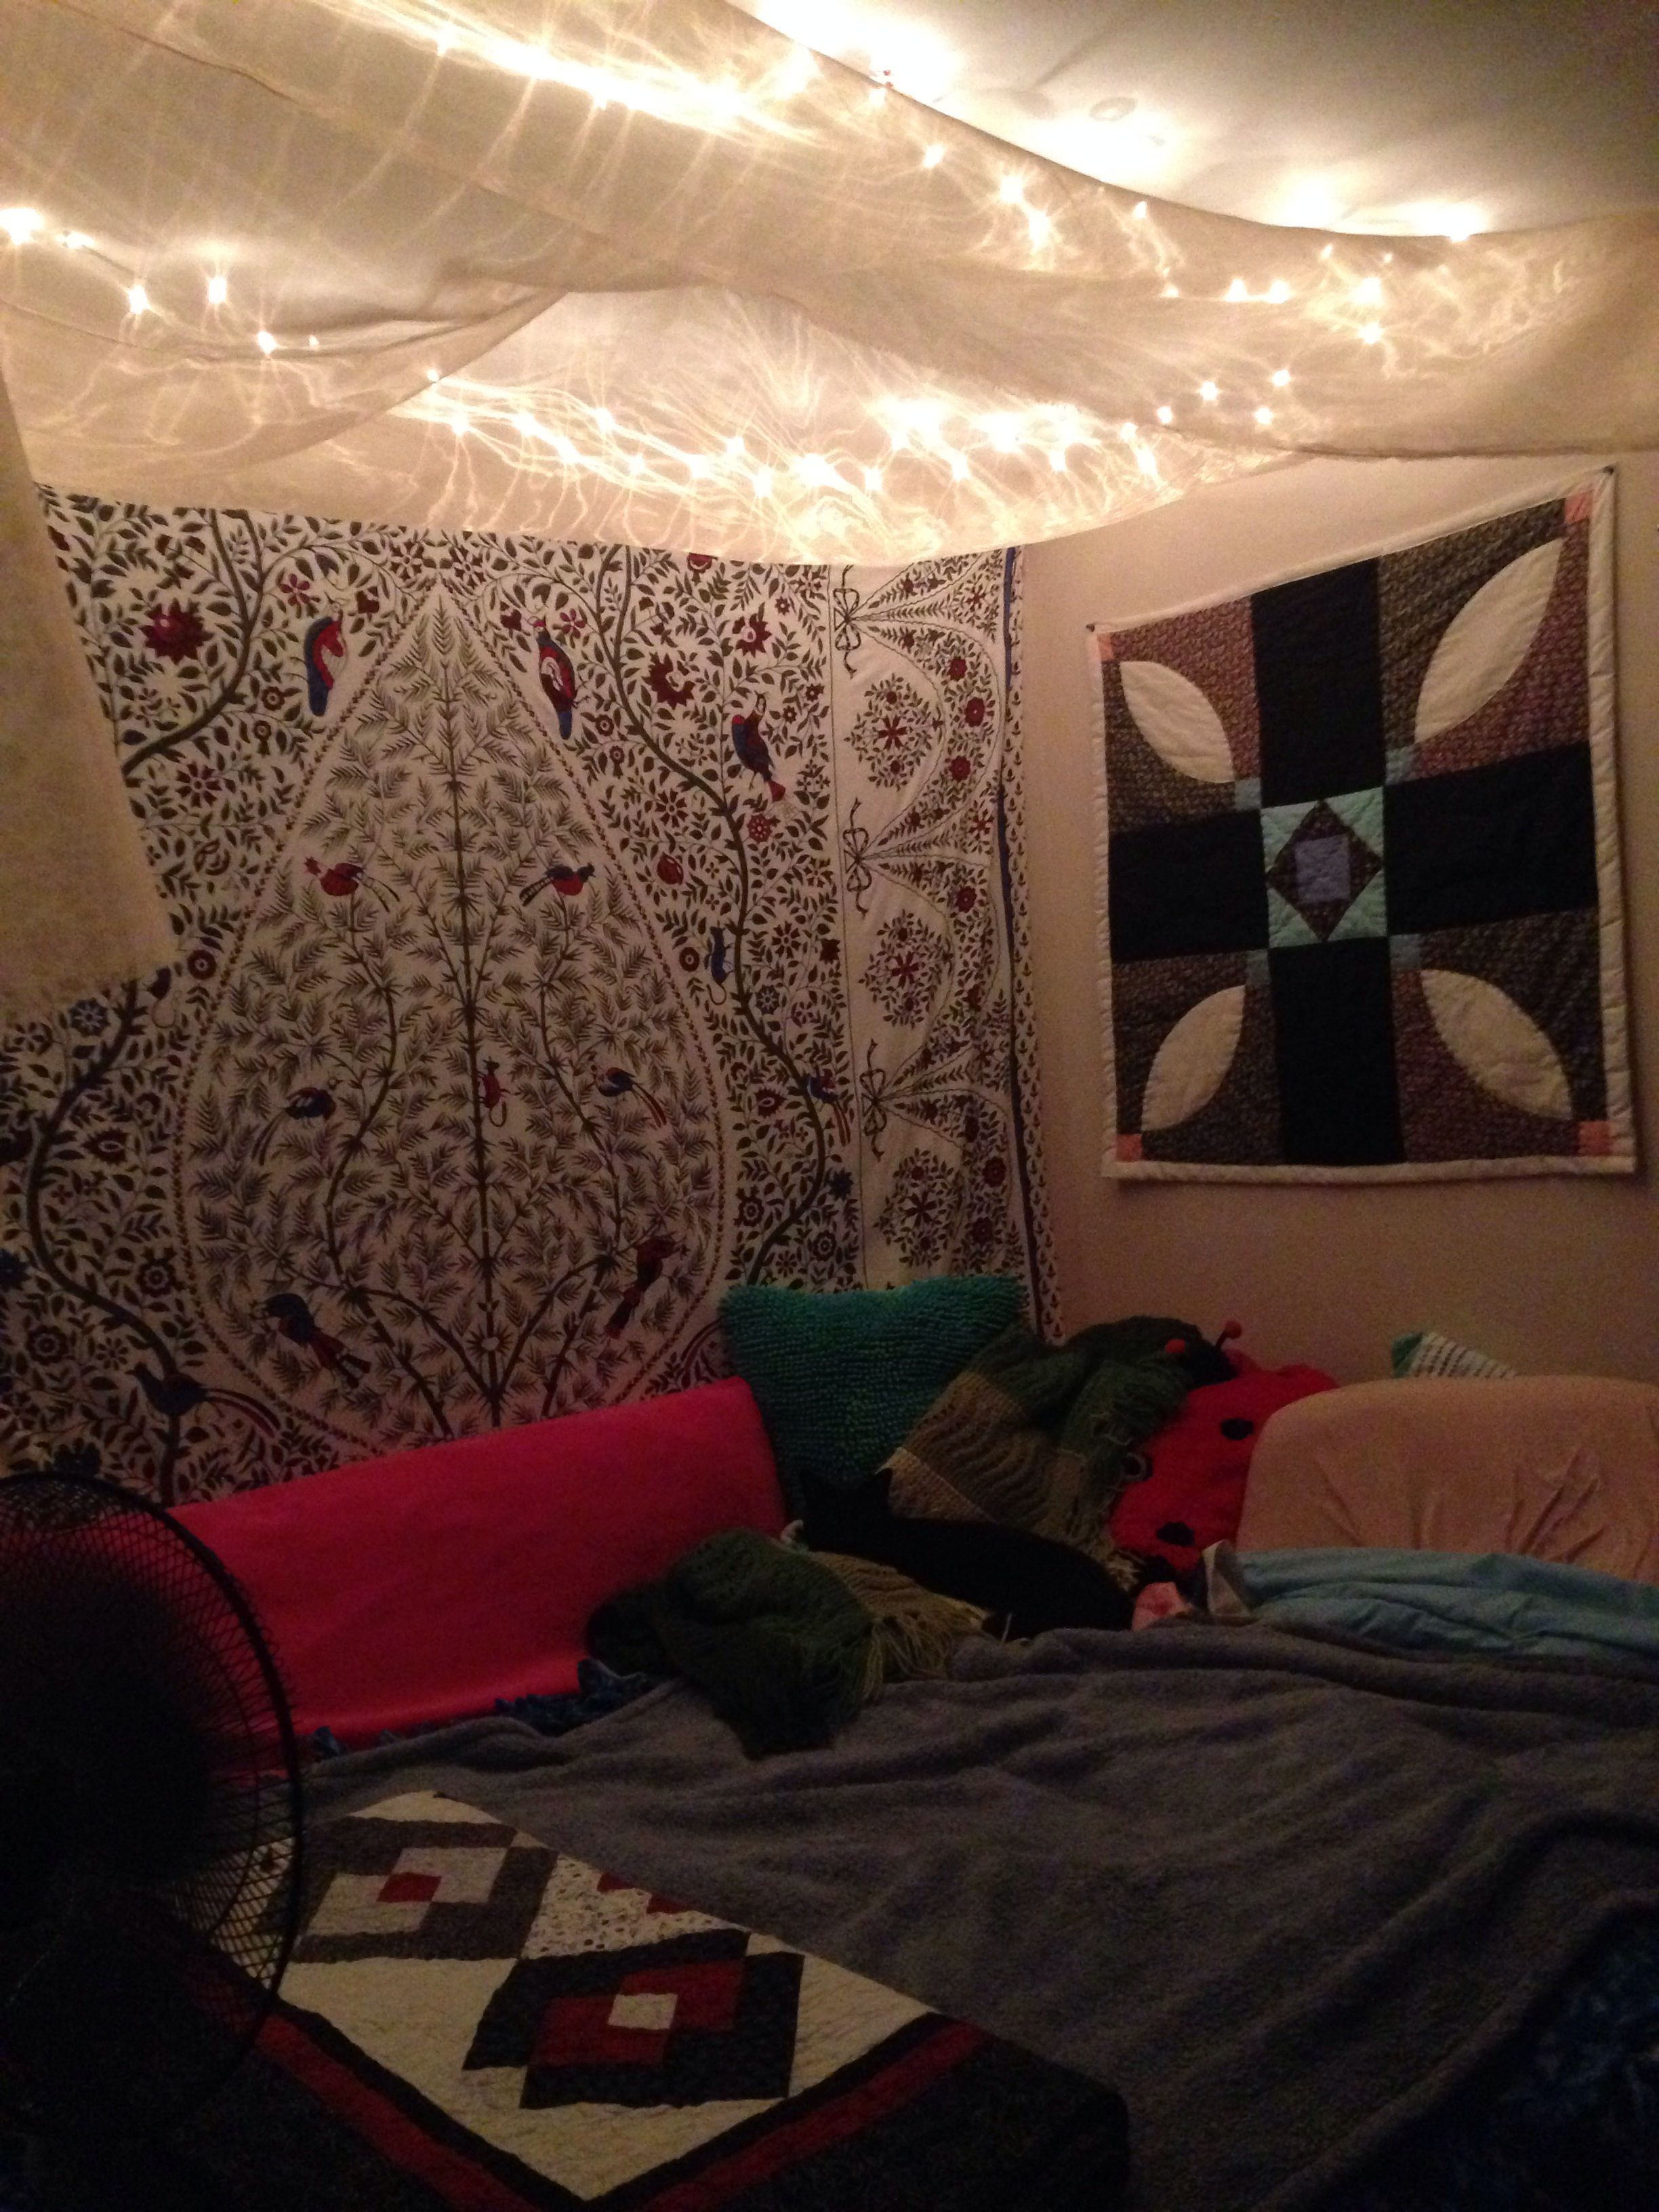 Canopy bed with lights -  Canopy With Christmas Lights Kitty On The Bed And Urban Outfitters Tapestry